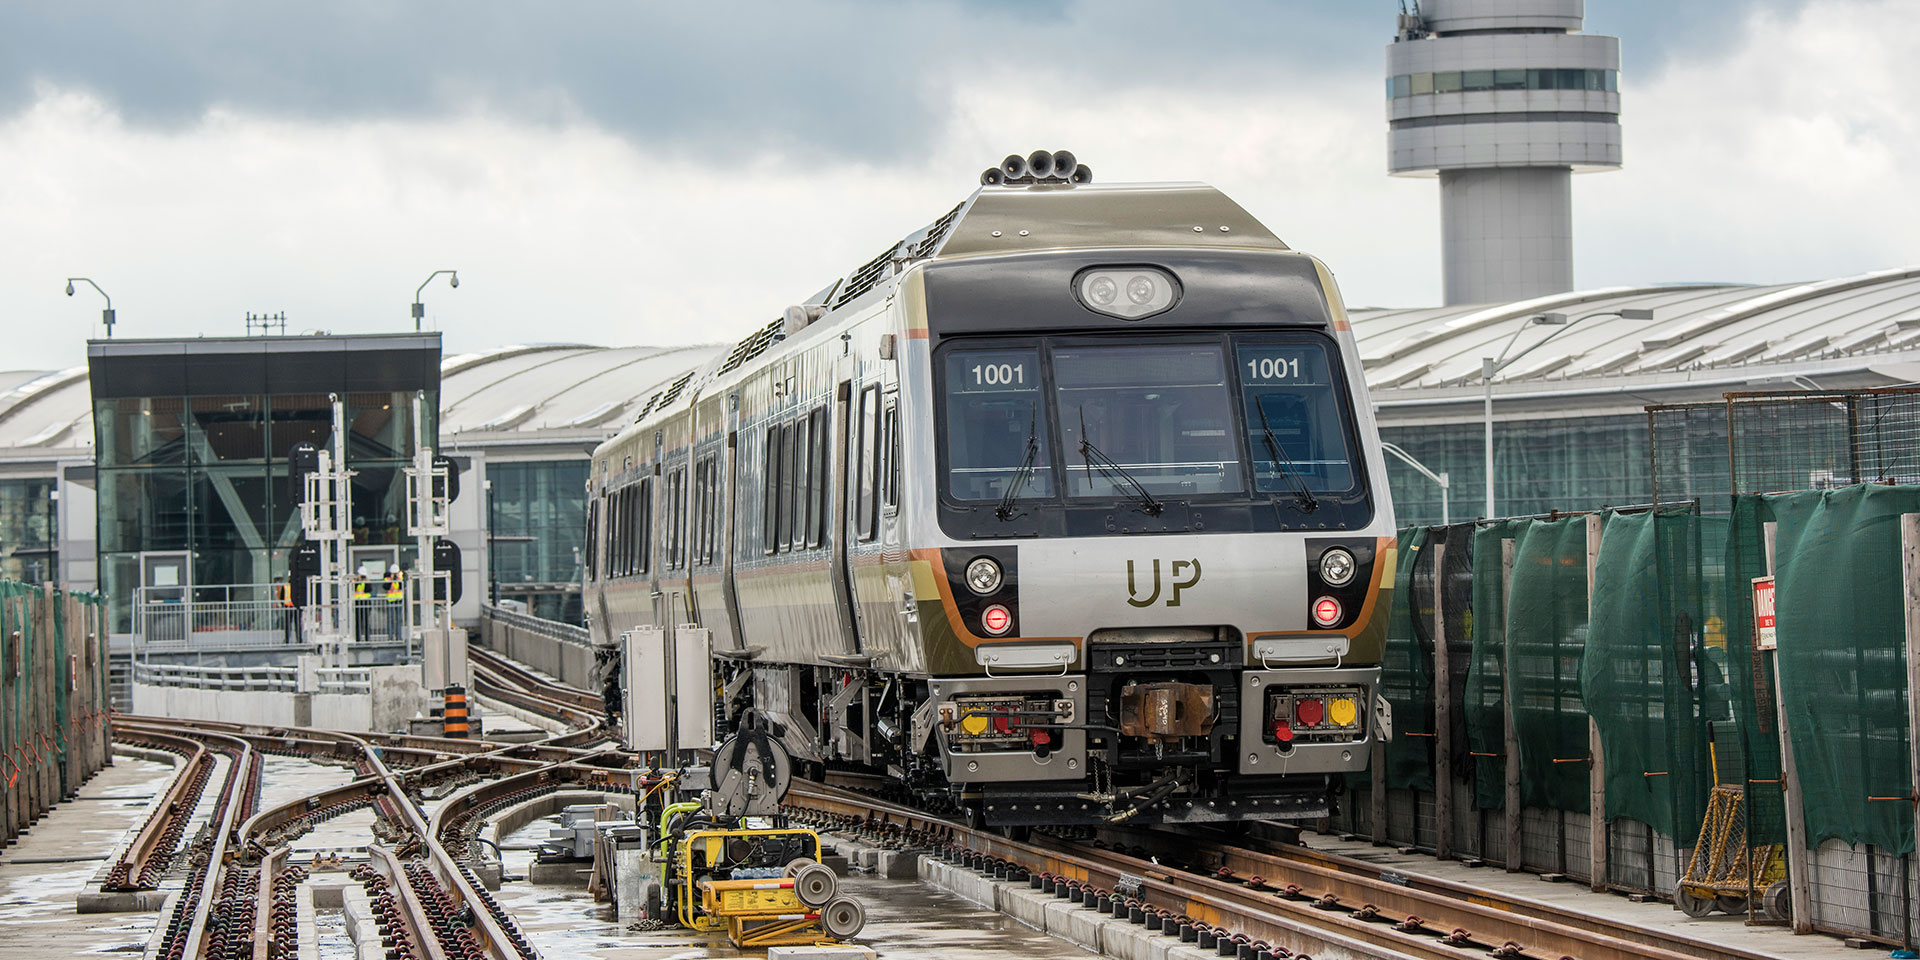 Union-Pearson (UP) Express Front Train